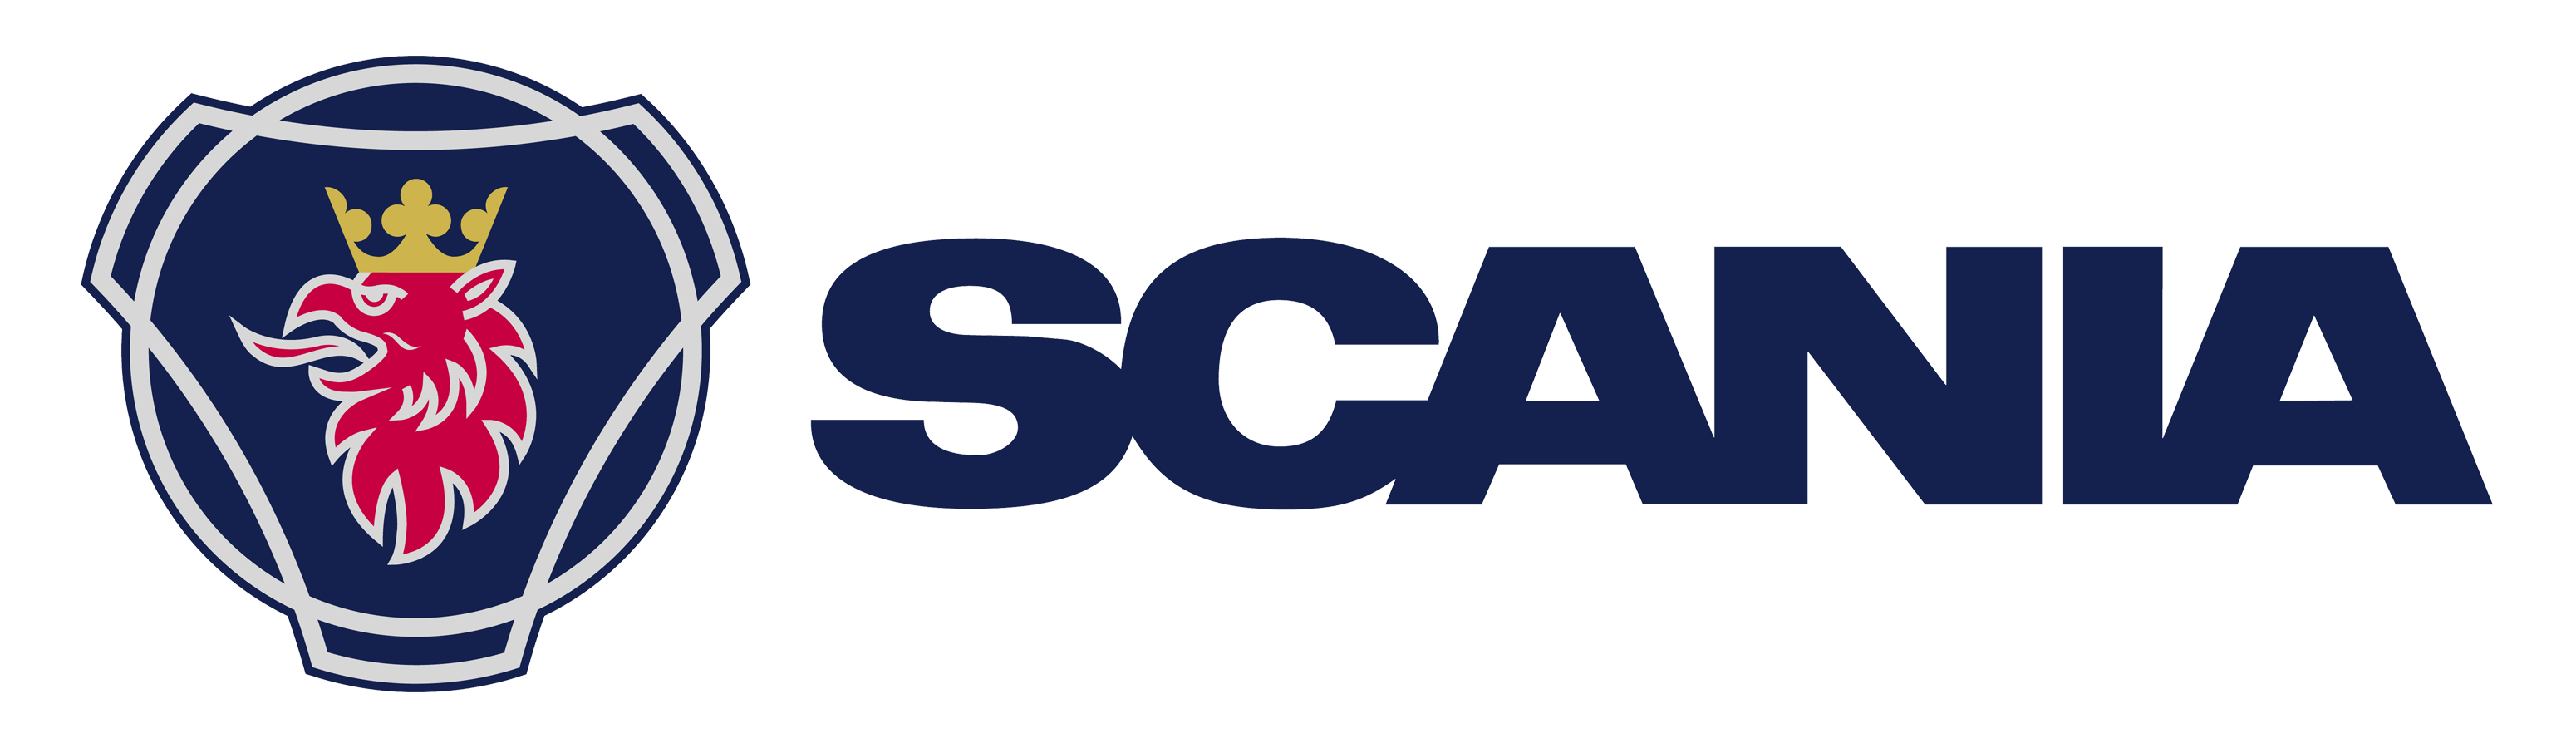 Scania Logo, HD Png, Meaning, Information | Carlogos.org